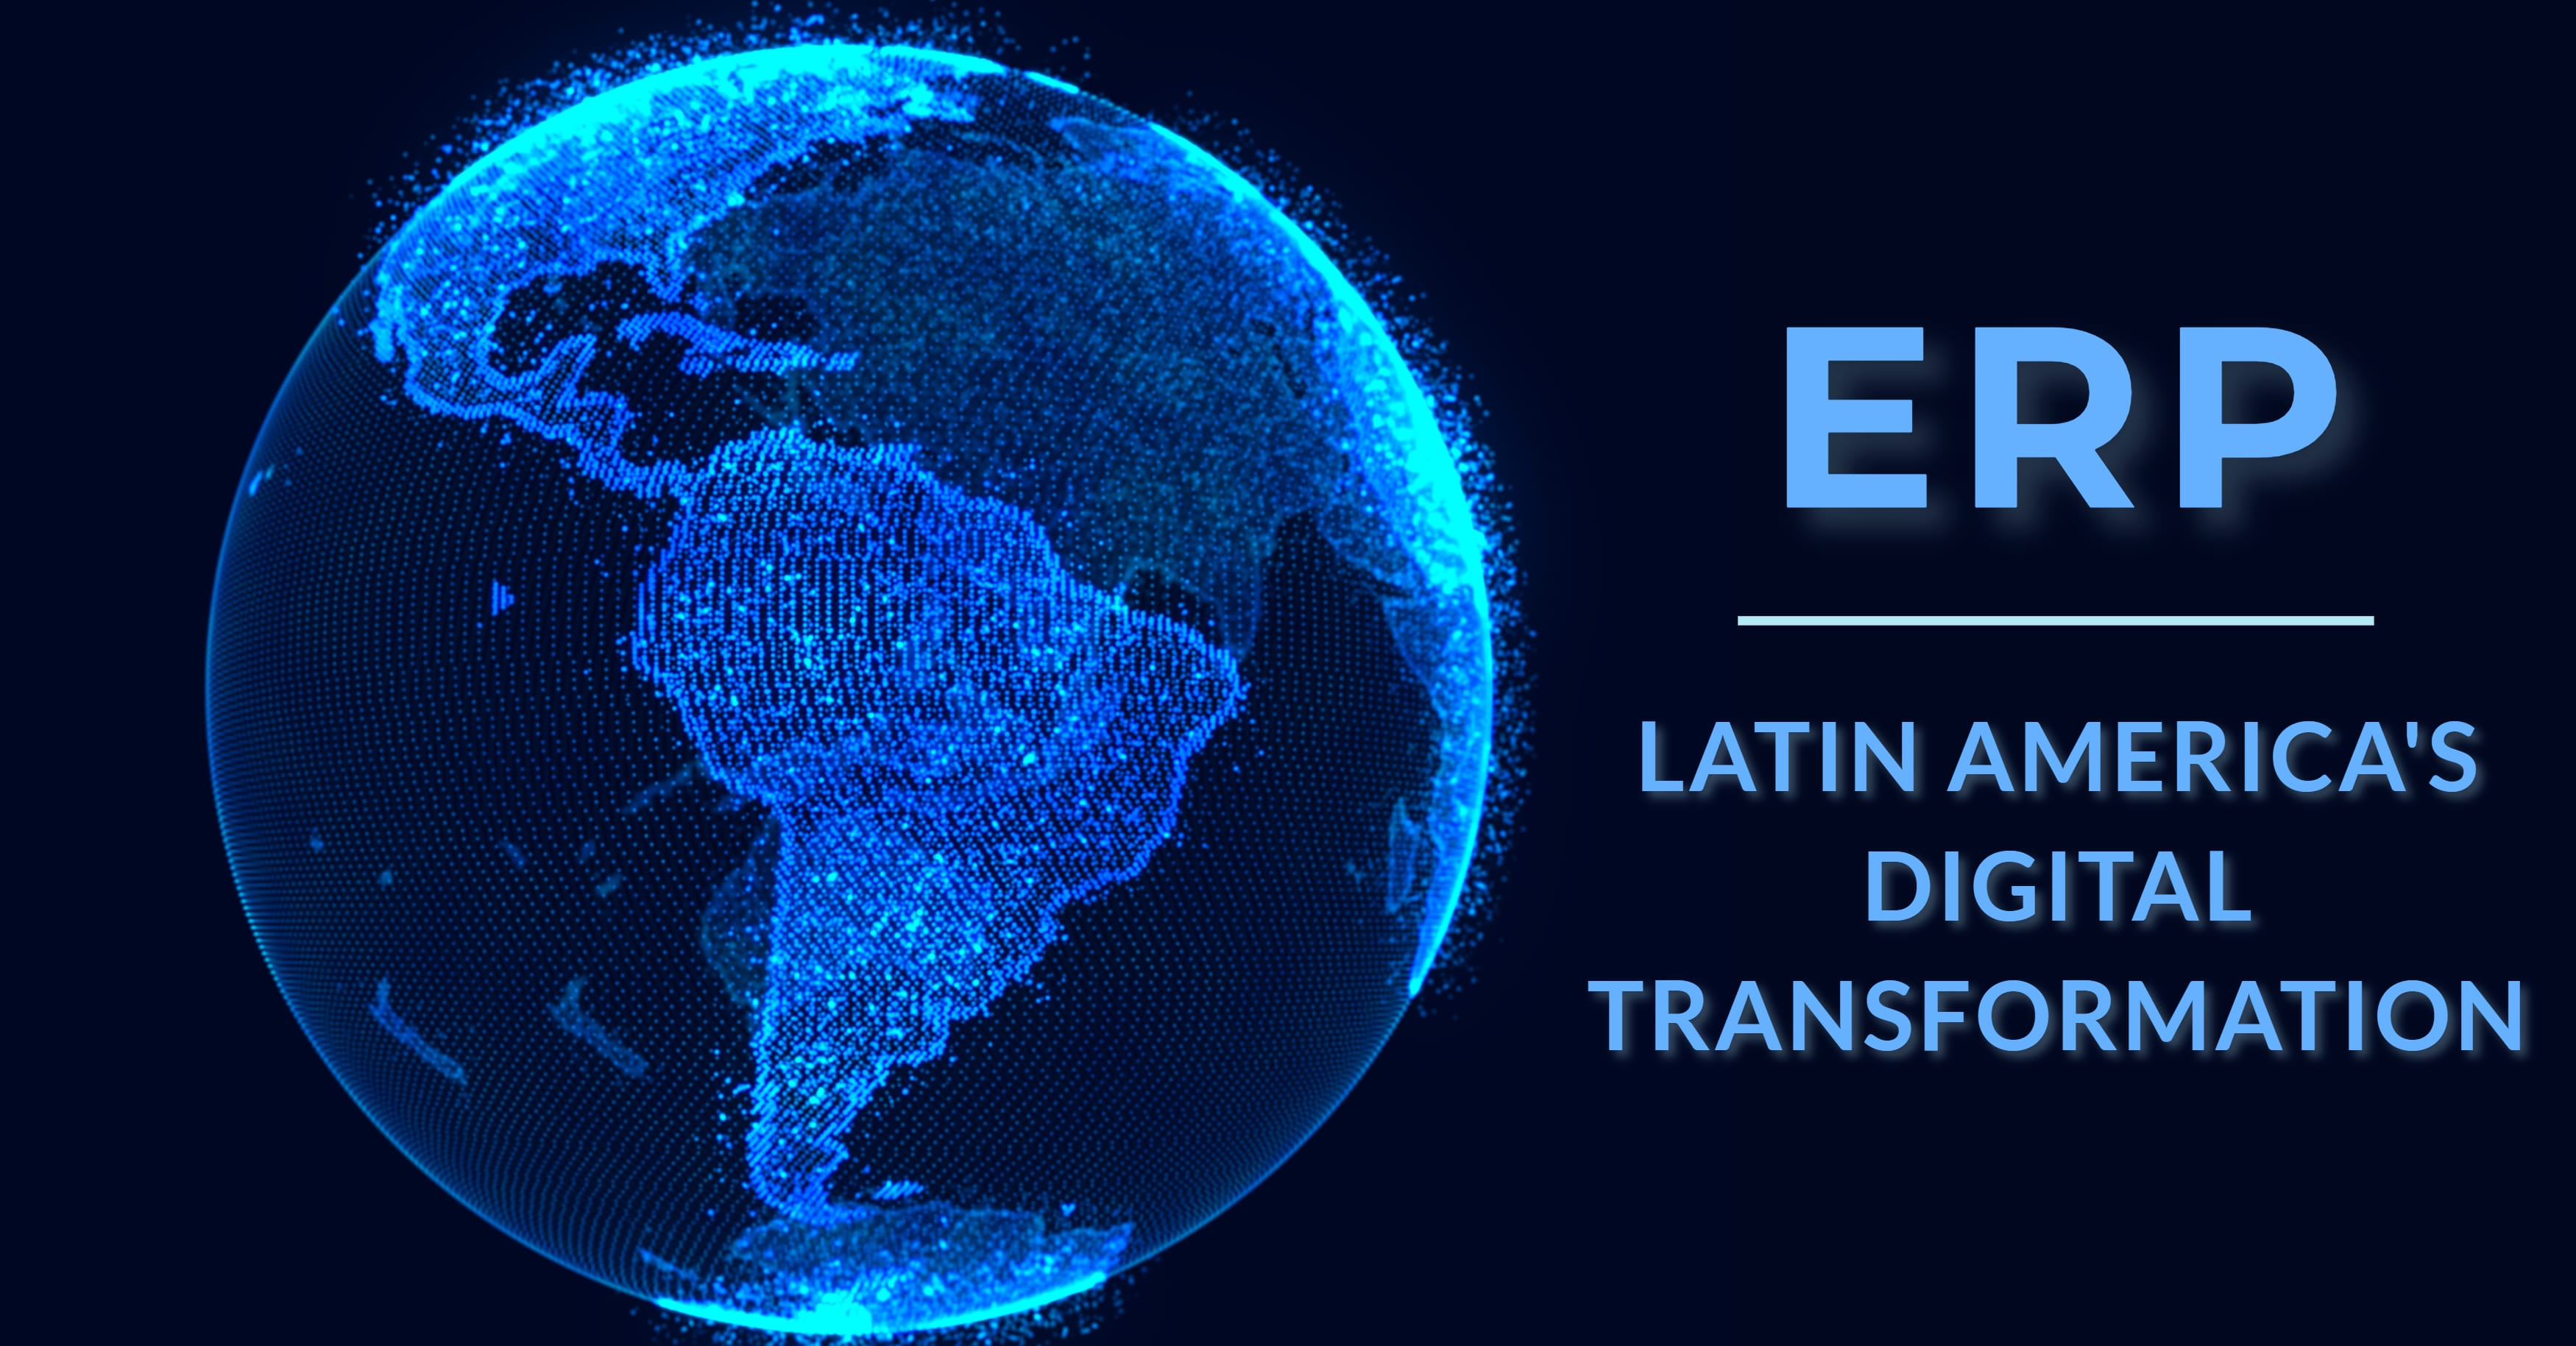 ERP's Role in Latin America's Digital Transformation